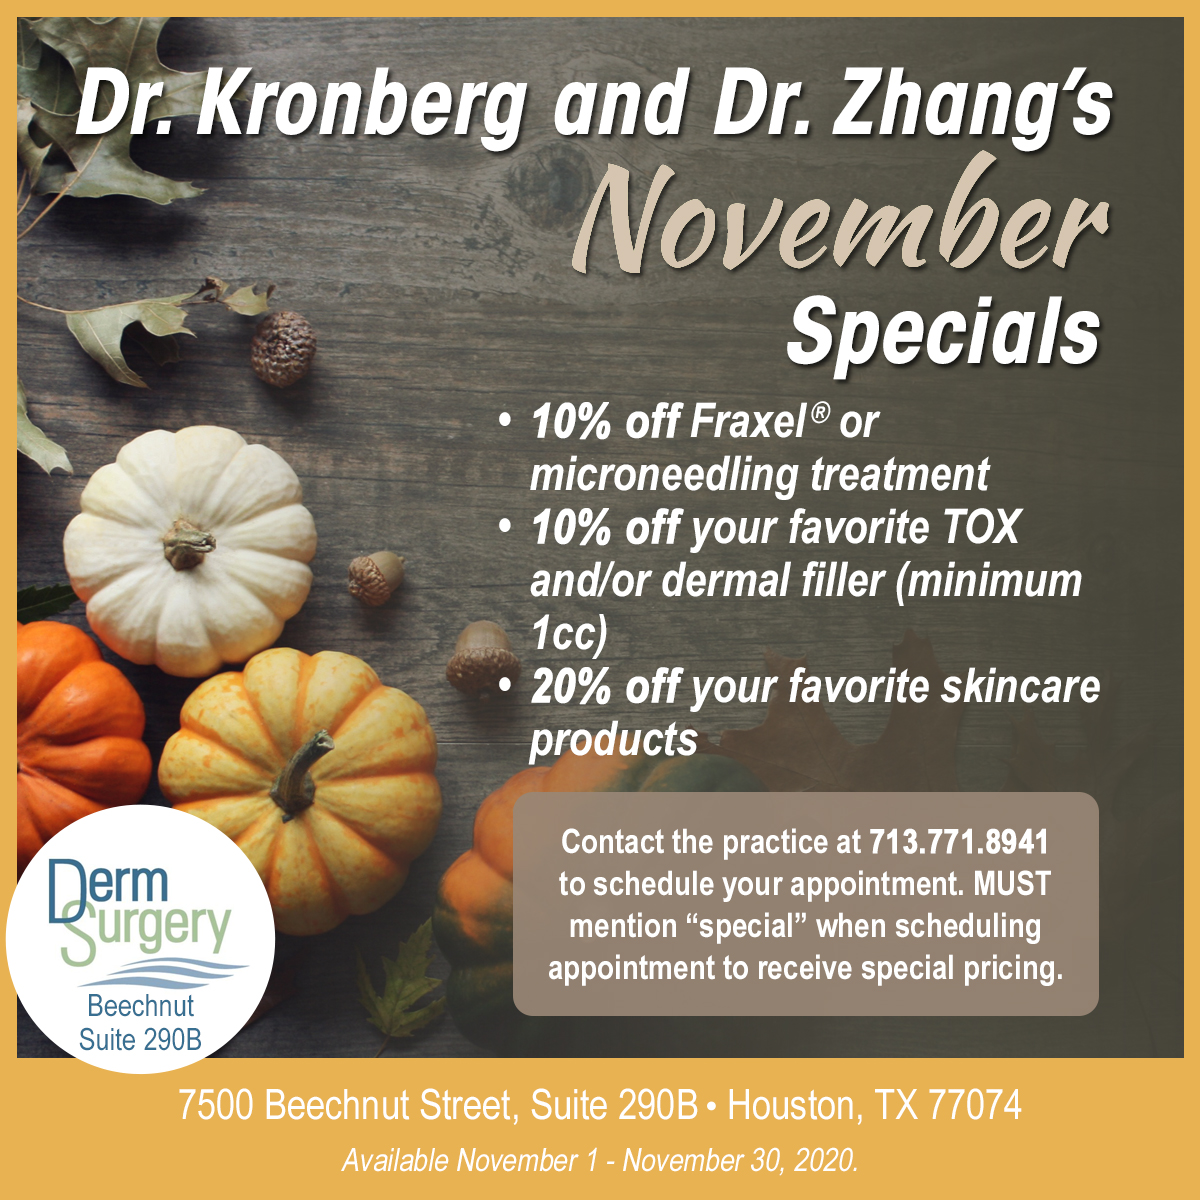 Dr. Kronberg's and Dr. Zhang's November Special